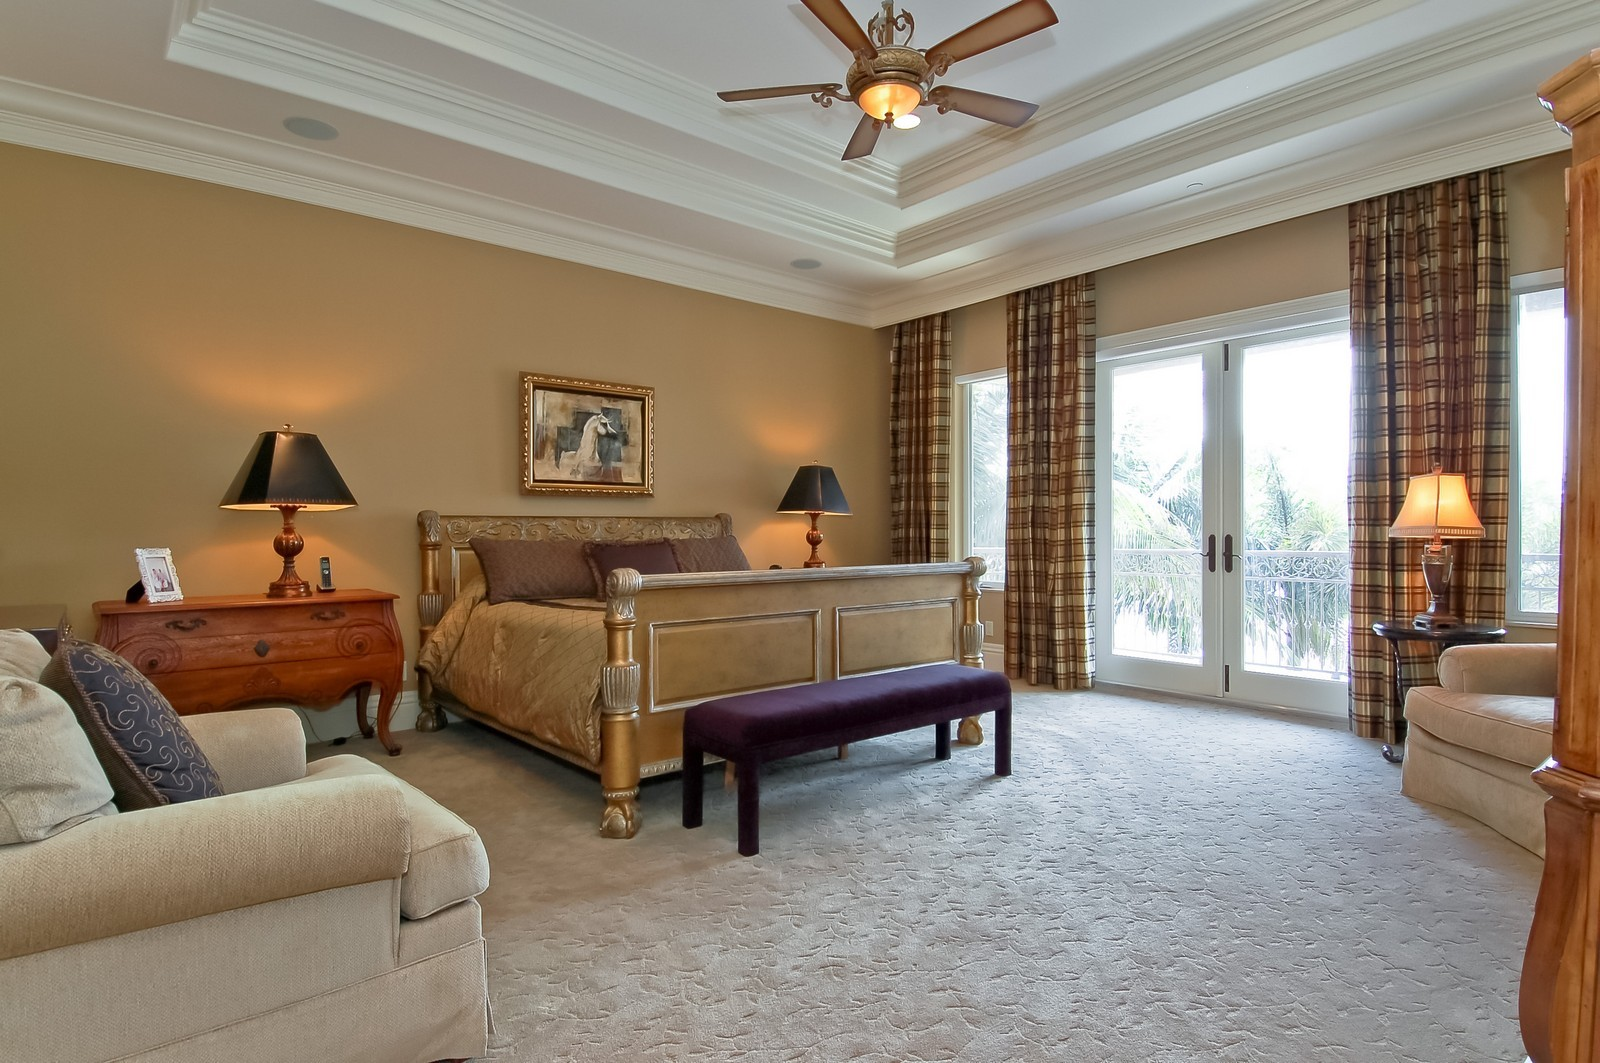 Real Estate Photography - 4022 S Ocean Blvd, Highland Beach, FL, 33487 - Master Bedroom